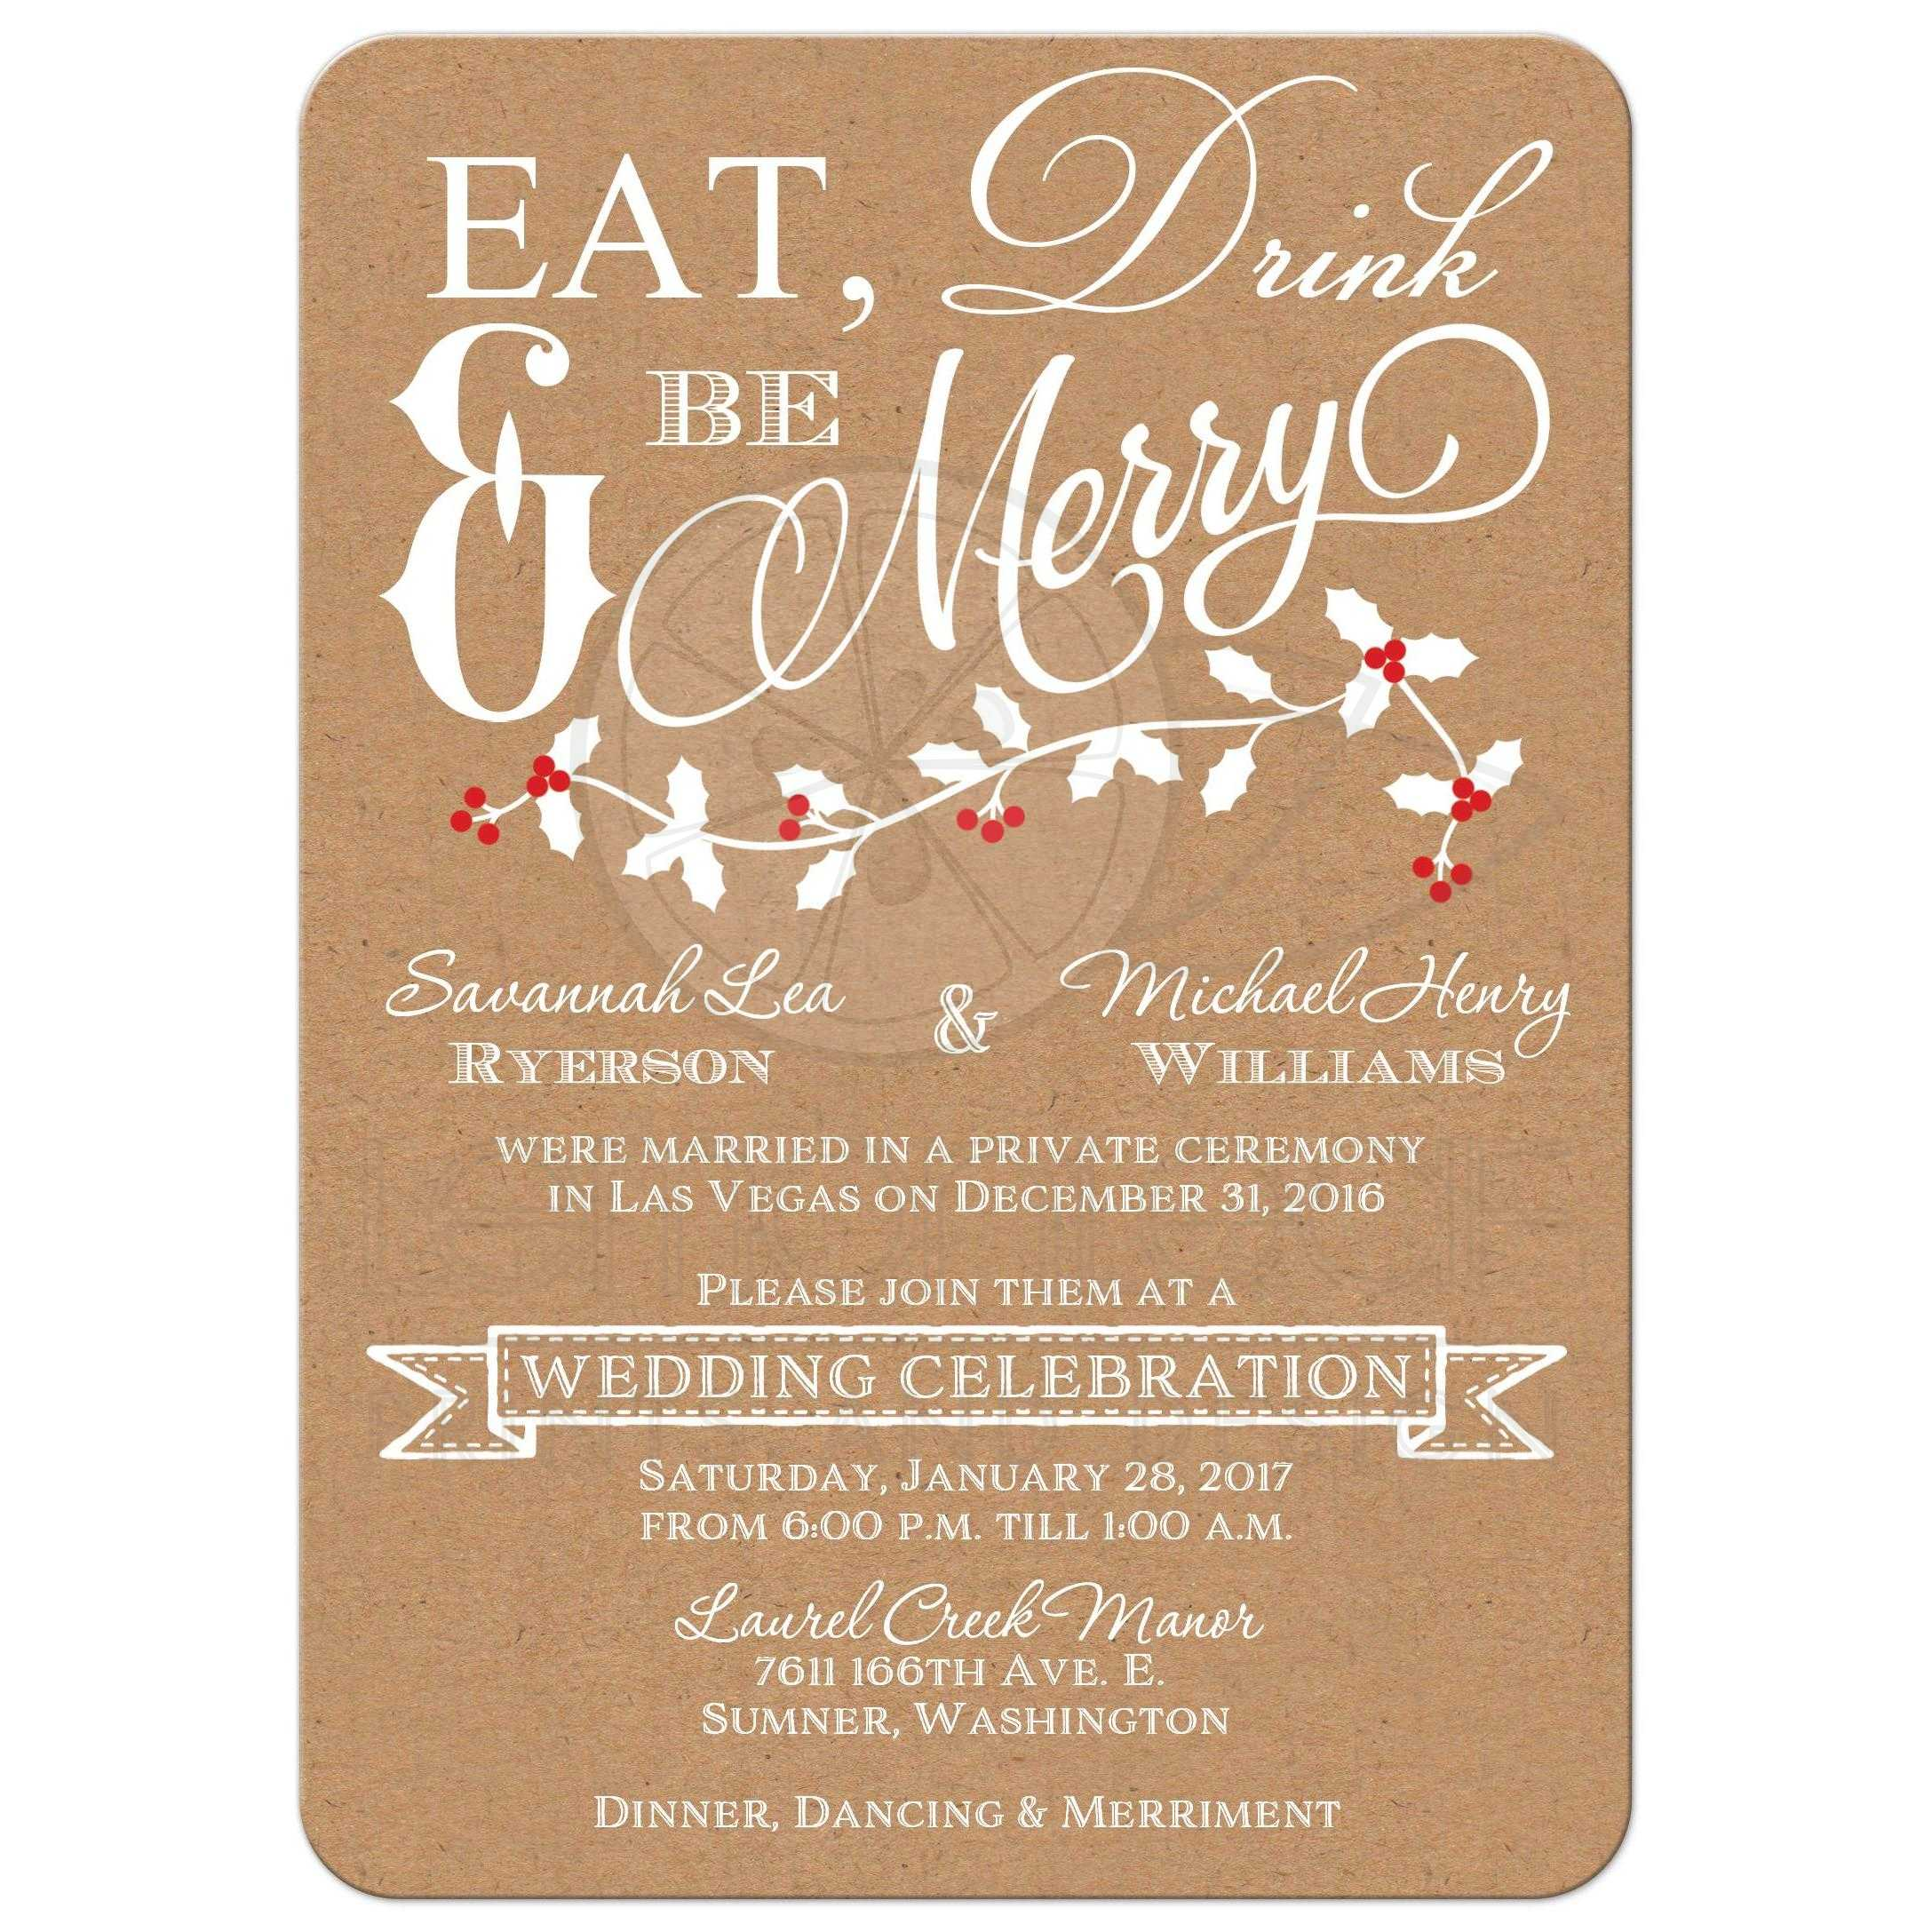 winter wedding reception invitation | eat, drink & be merry | faux, Wedding invitations